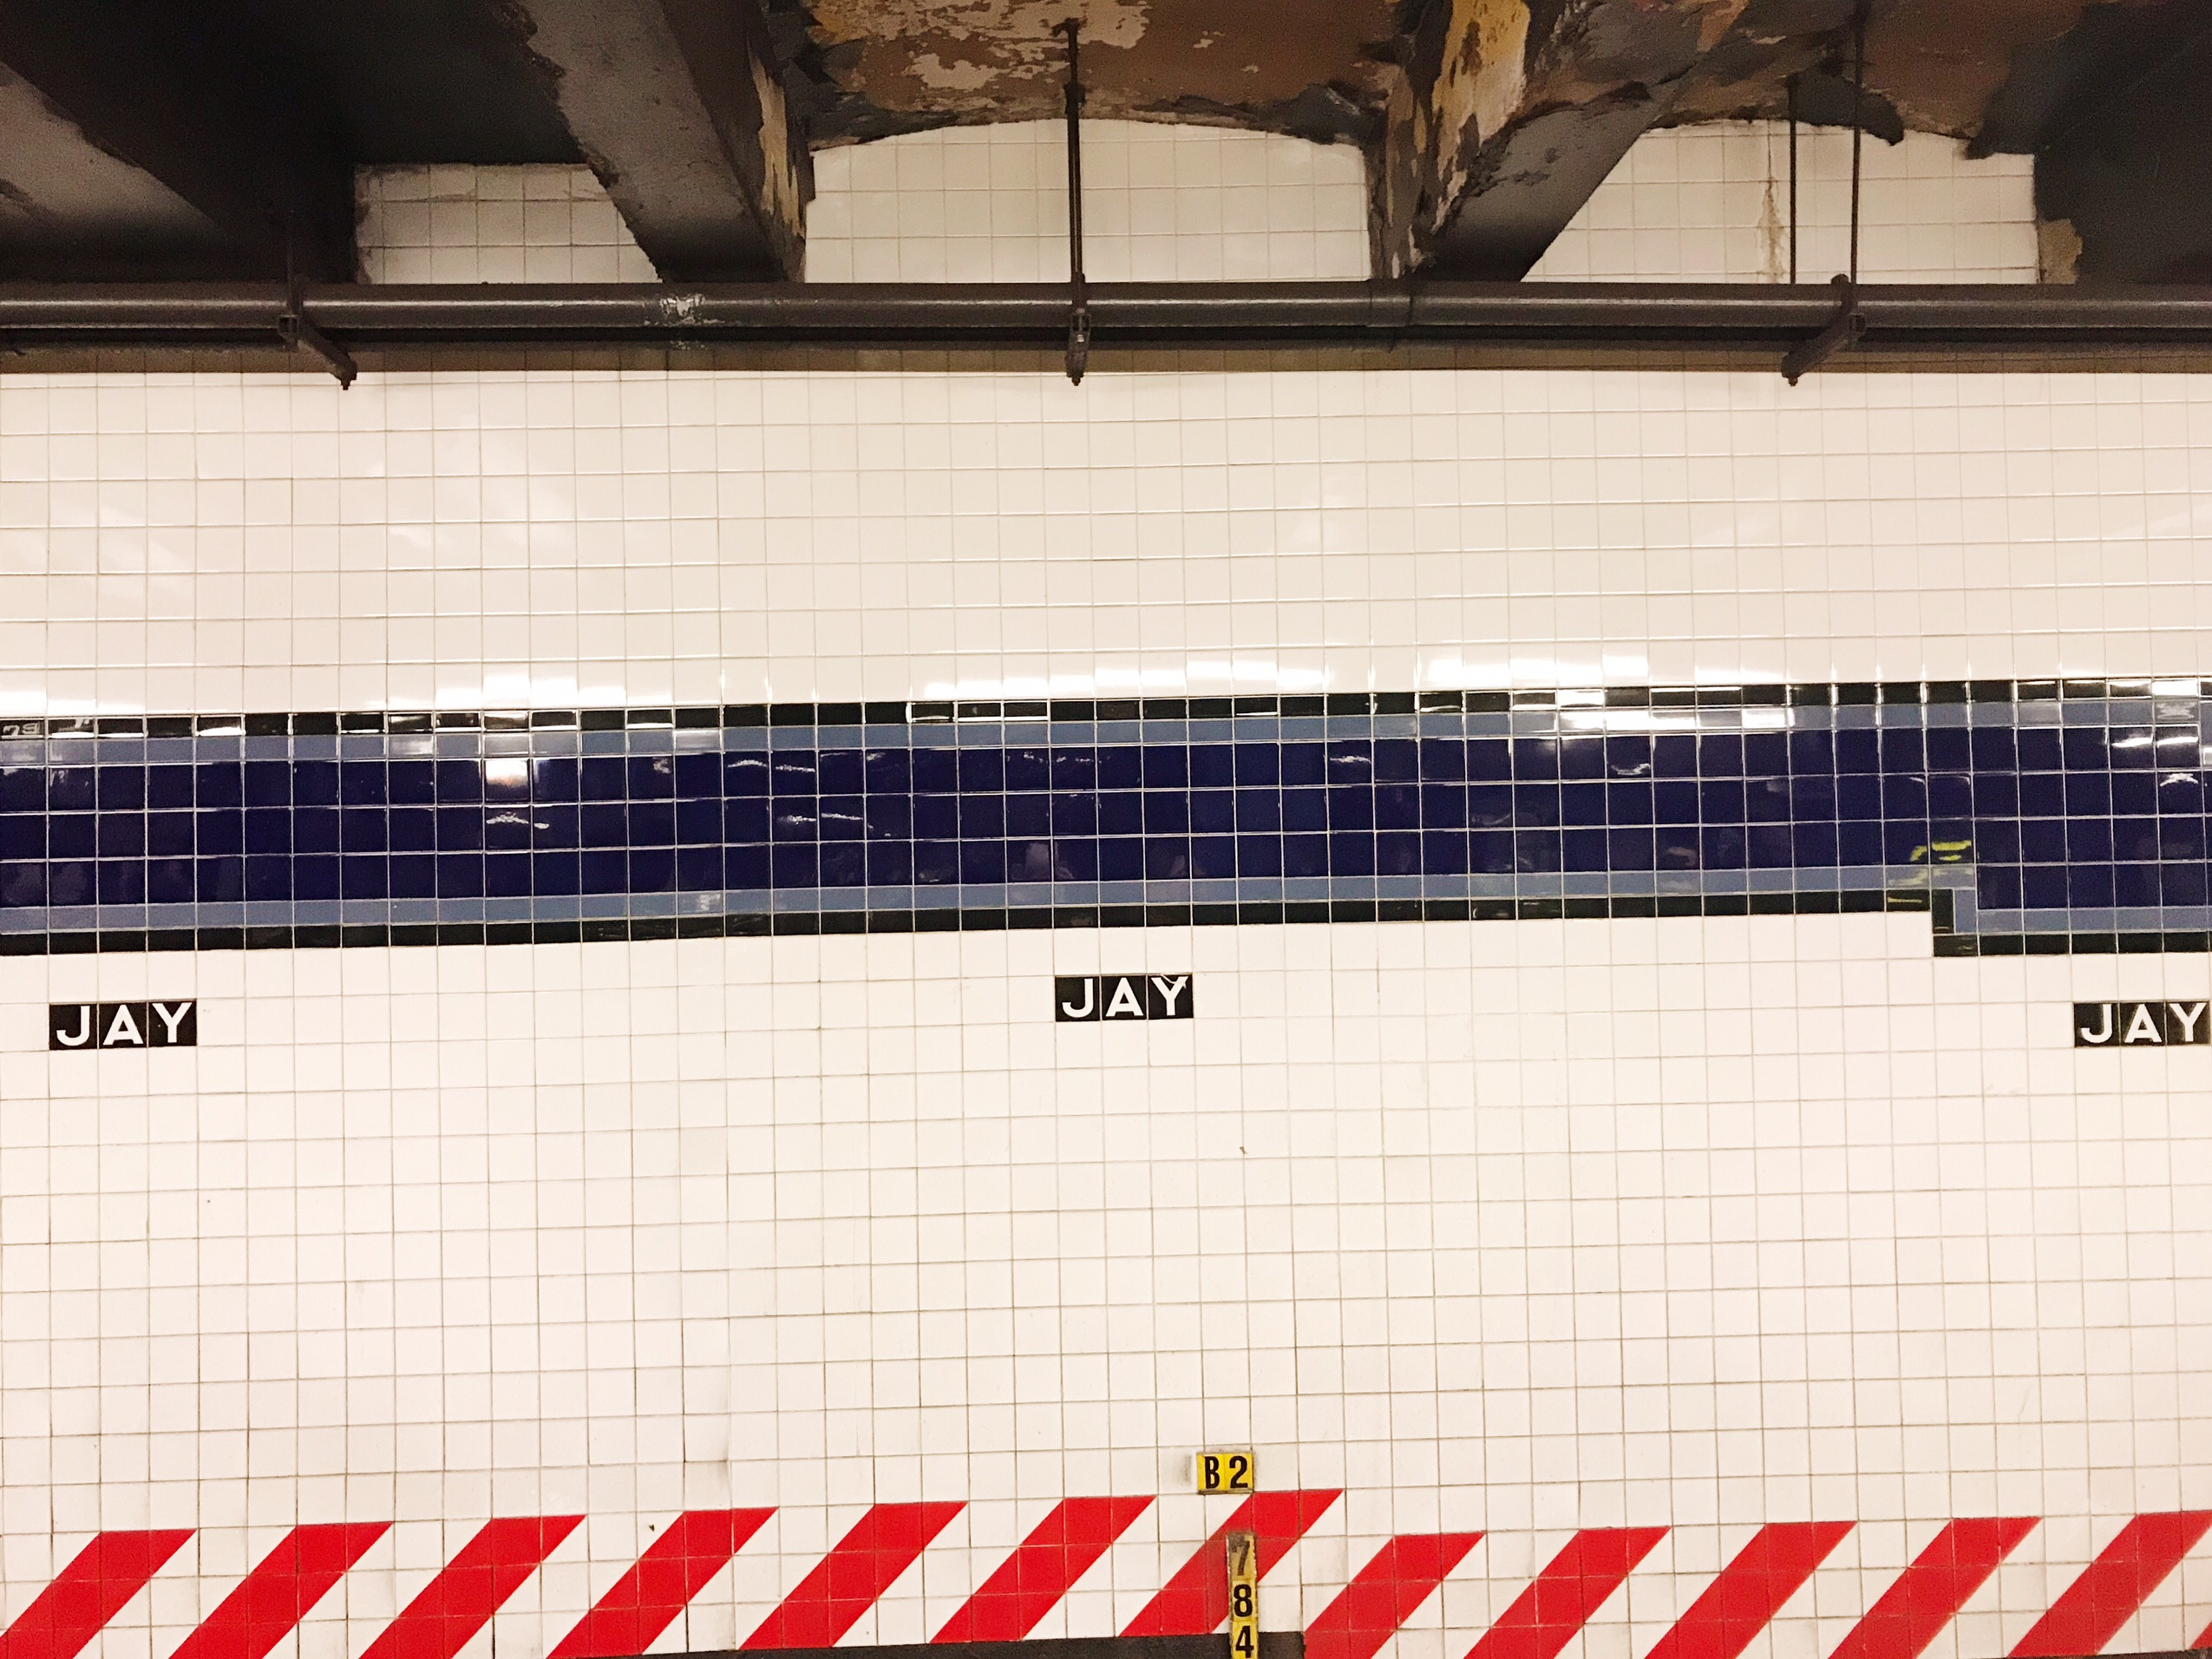 image of the subway in New York